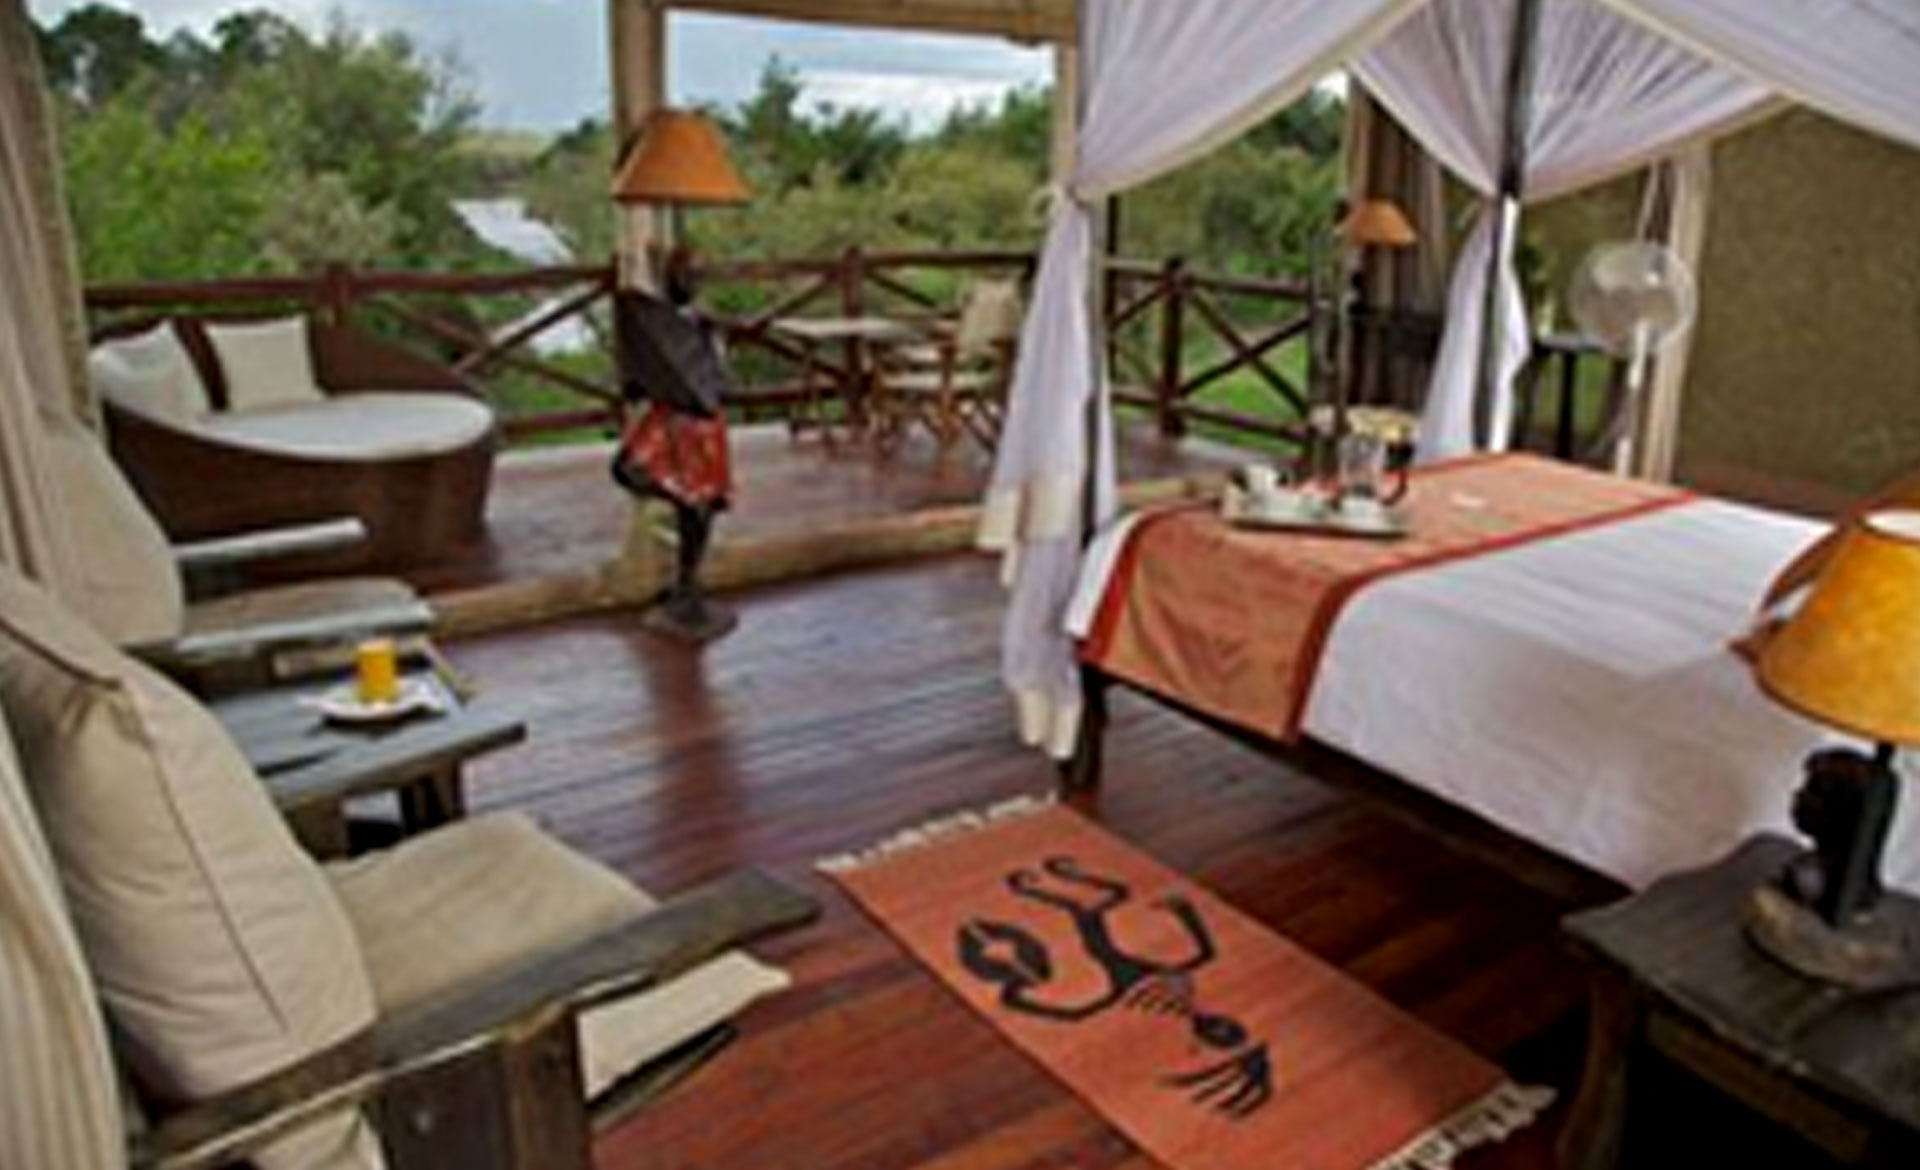 Diani_travel_center_diani_tours_and_safaris_3_Days_masai_mara_by_air_diani_masai_mara-air_ashnil_mara